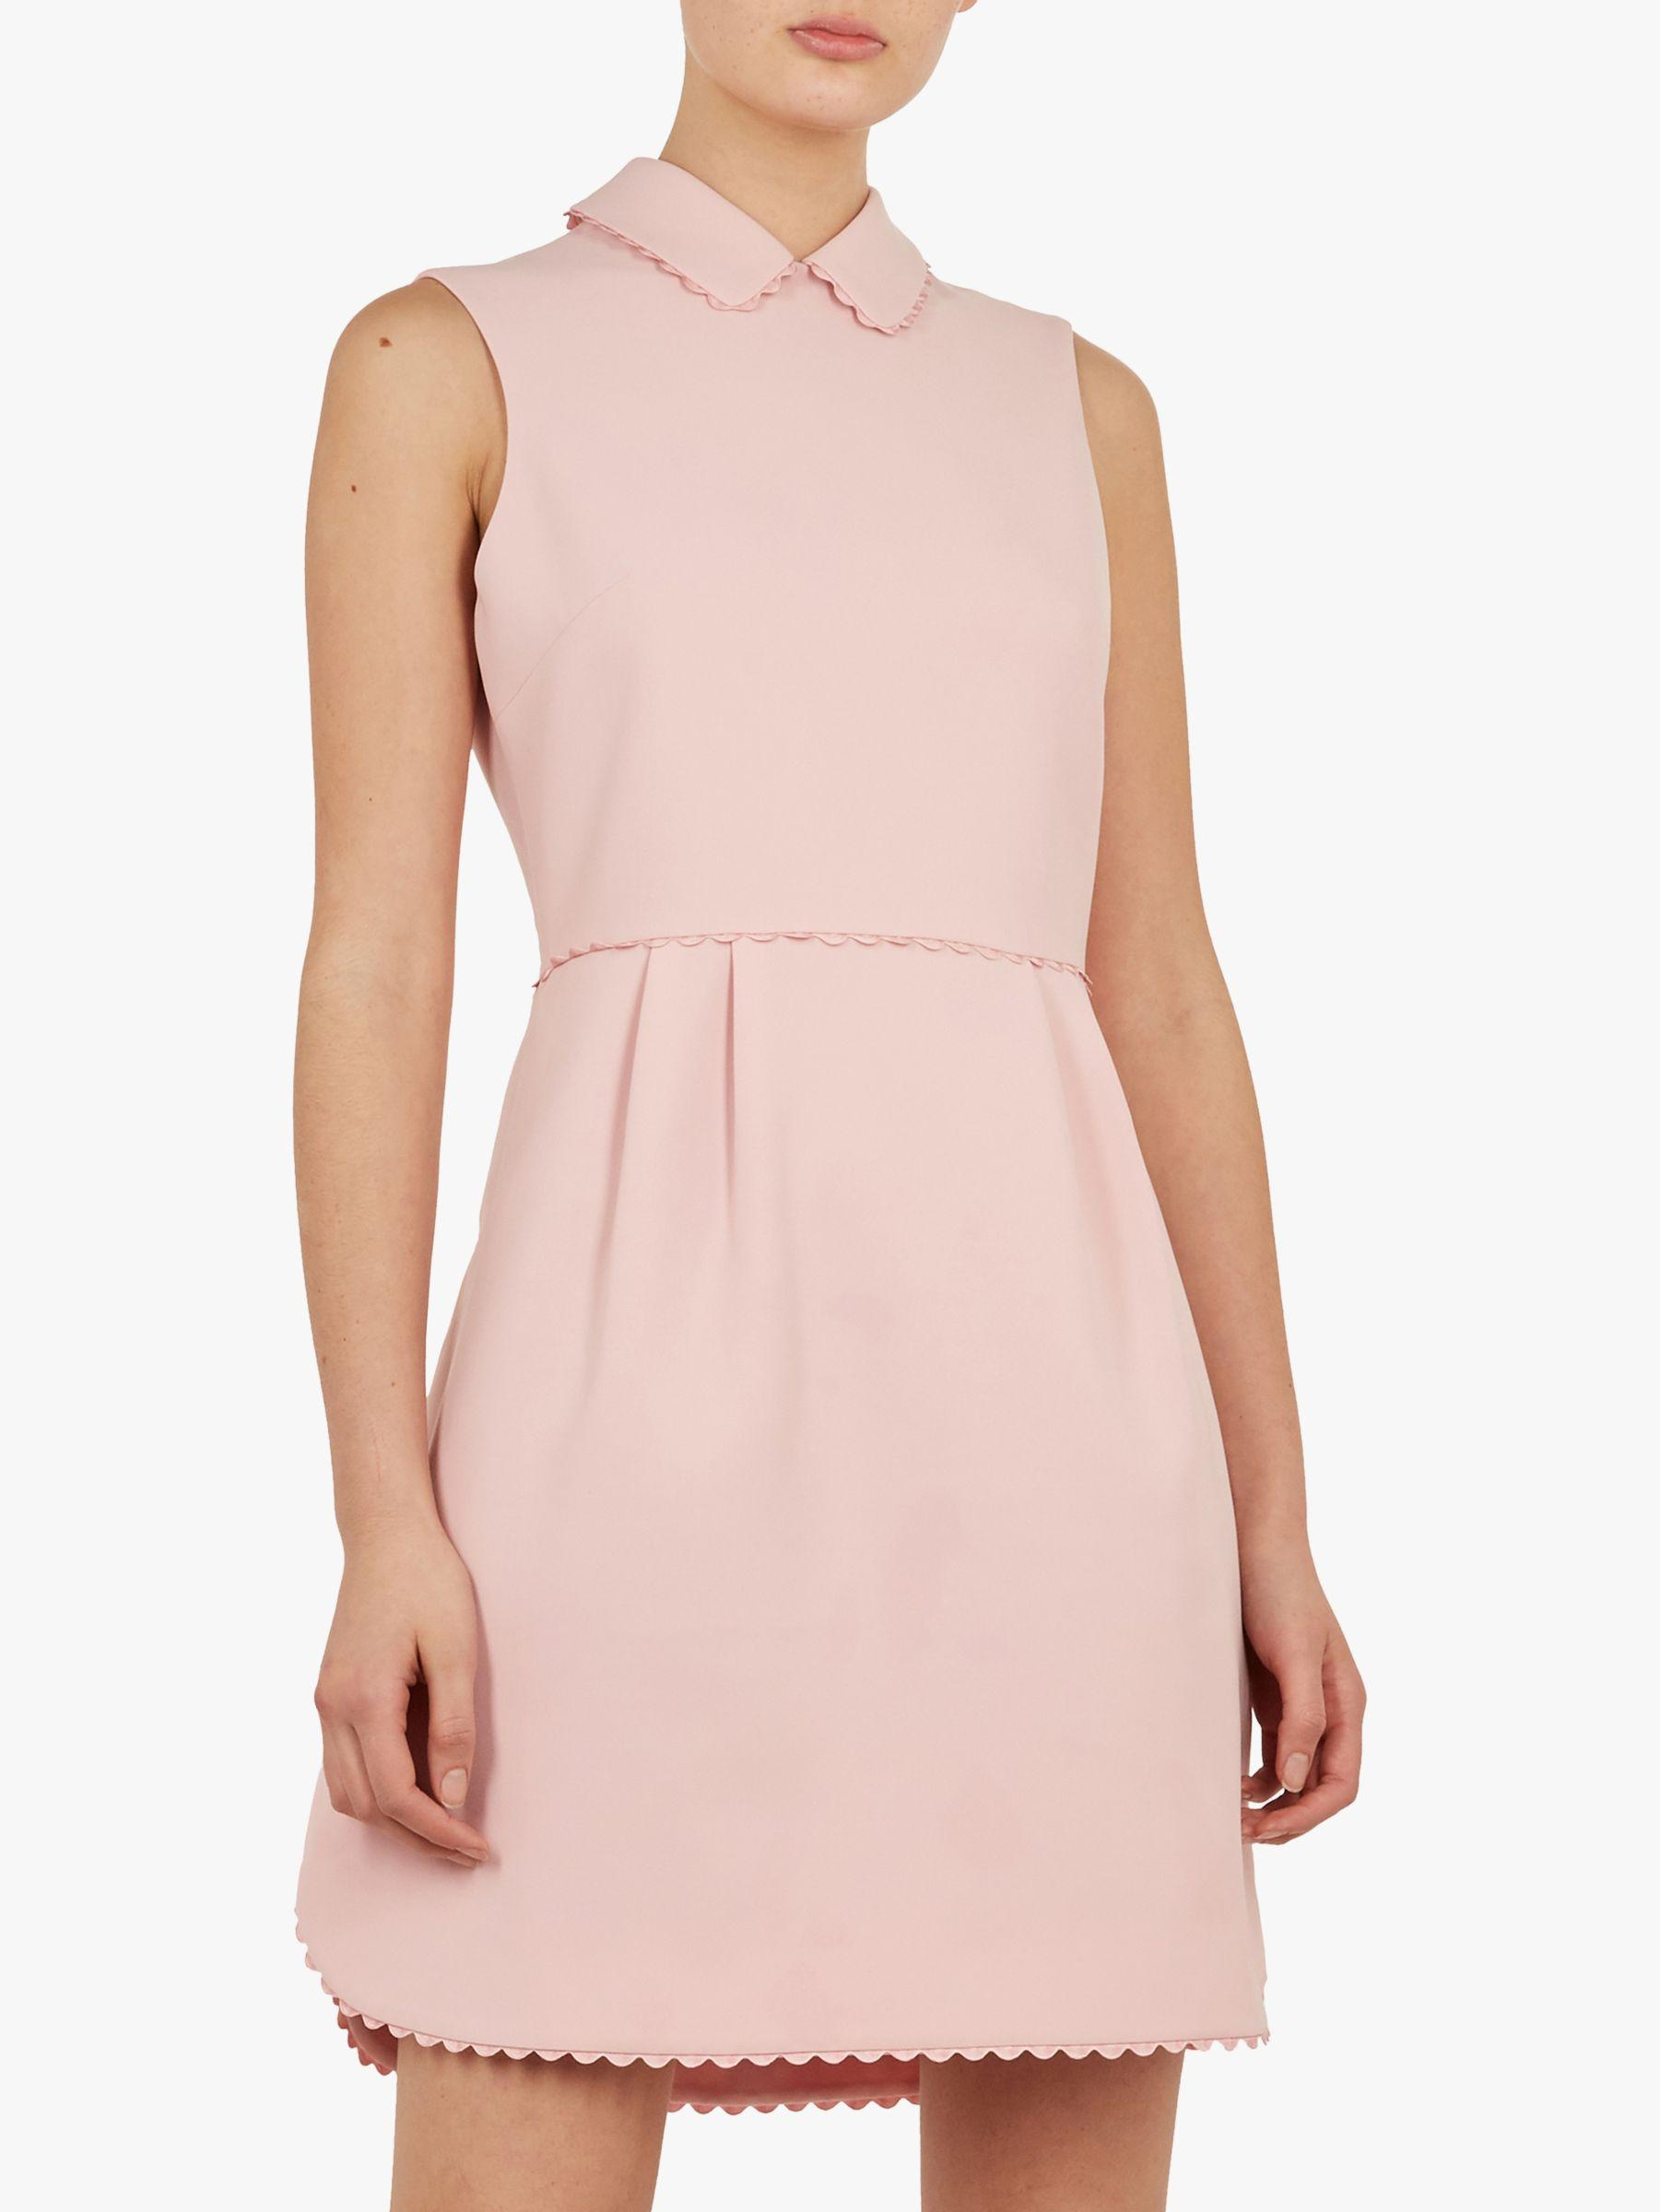 7d386dd94 Ted Baker Ezzy Curved Hem Scallop Detail Dress in Pink - Lyst